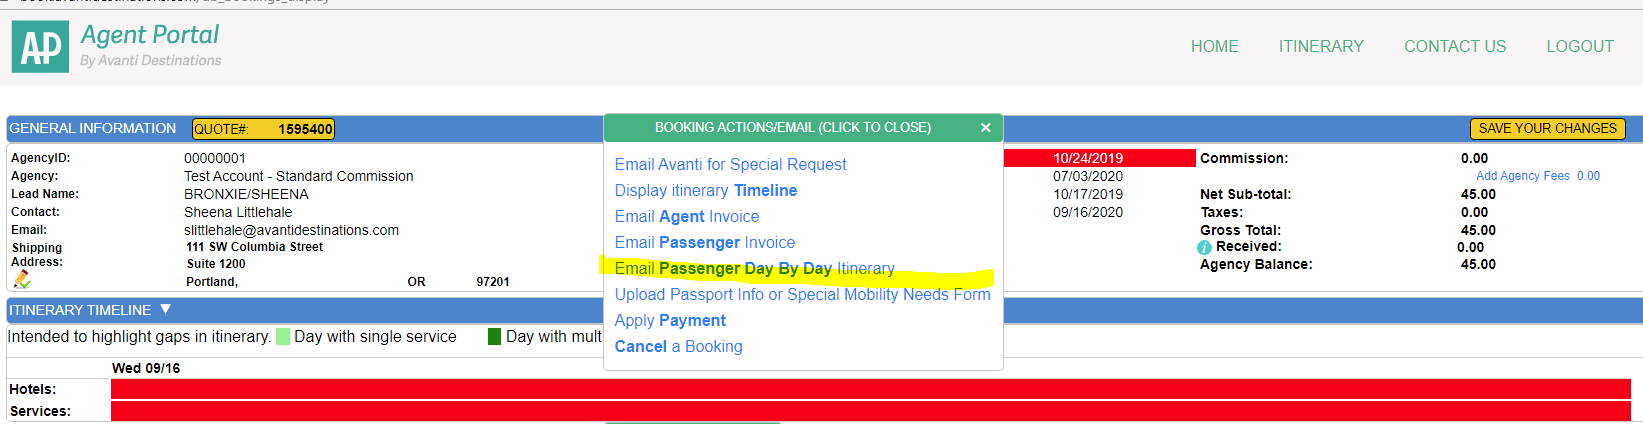 avanti_email_passenger_day_by_day.png